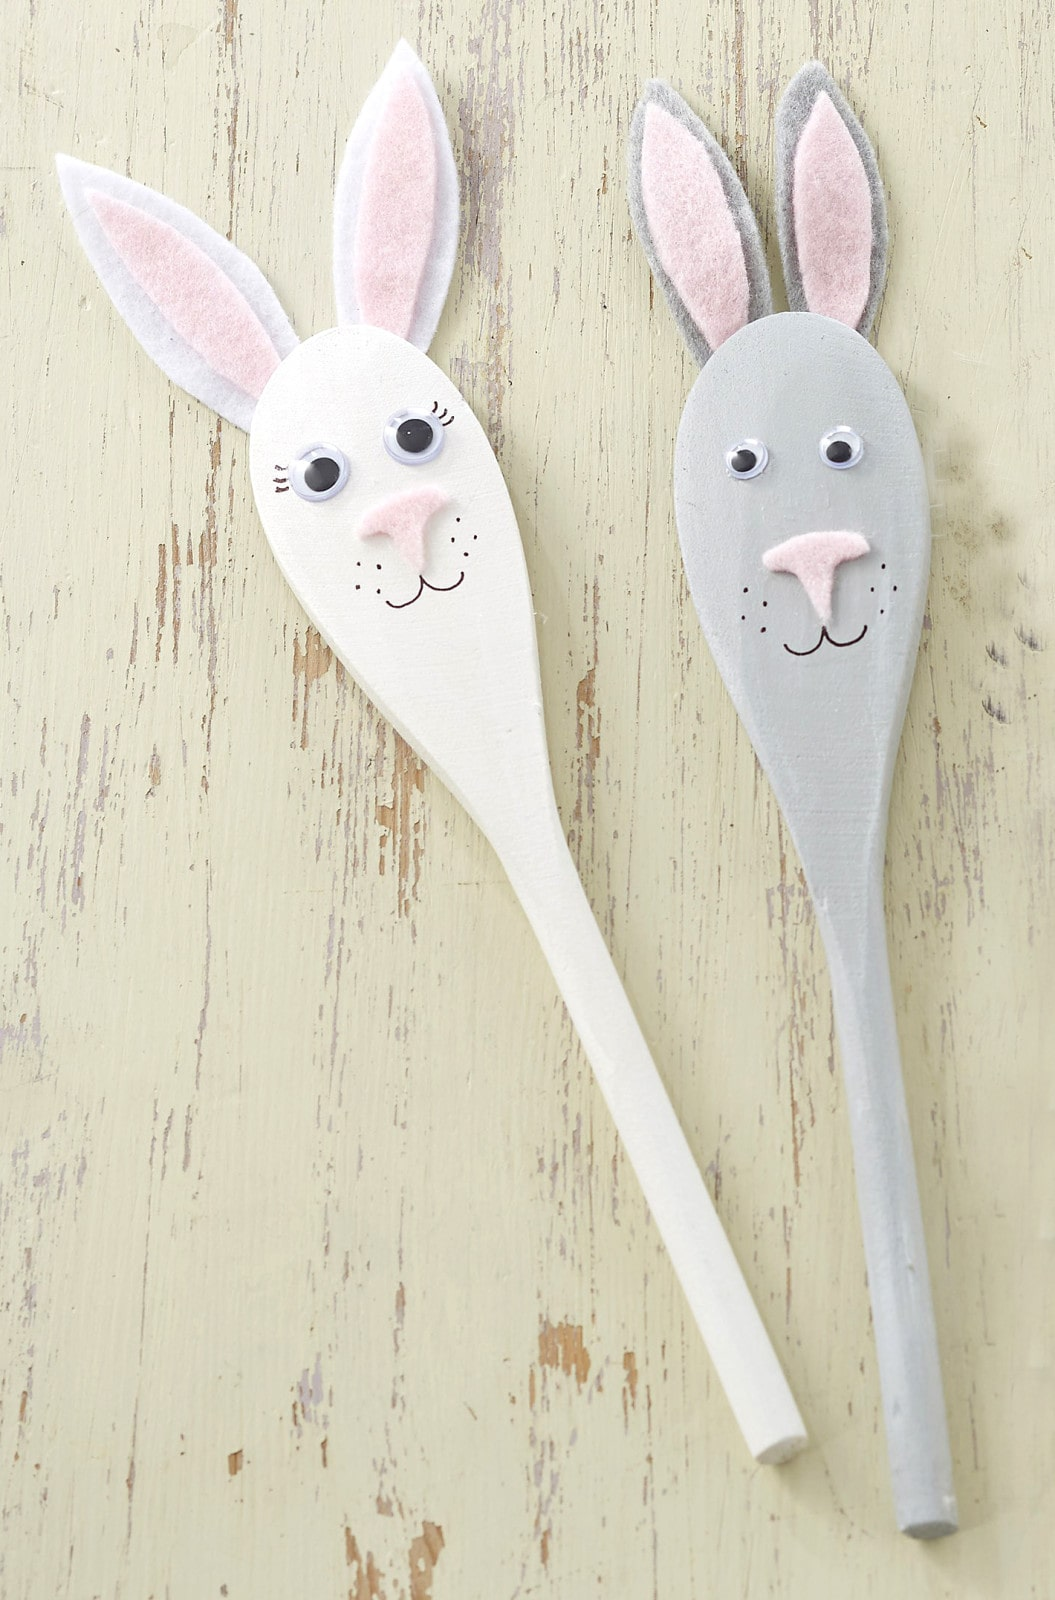 lots of great bunny crafts here - this spoon puppet one is cute